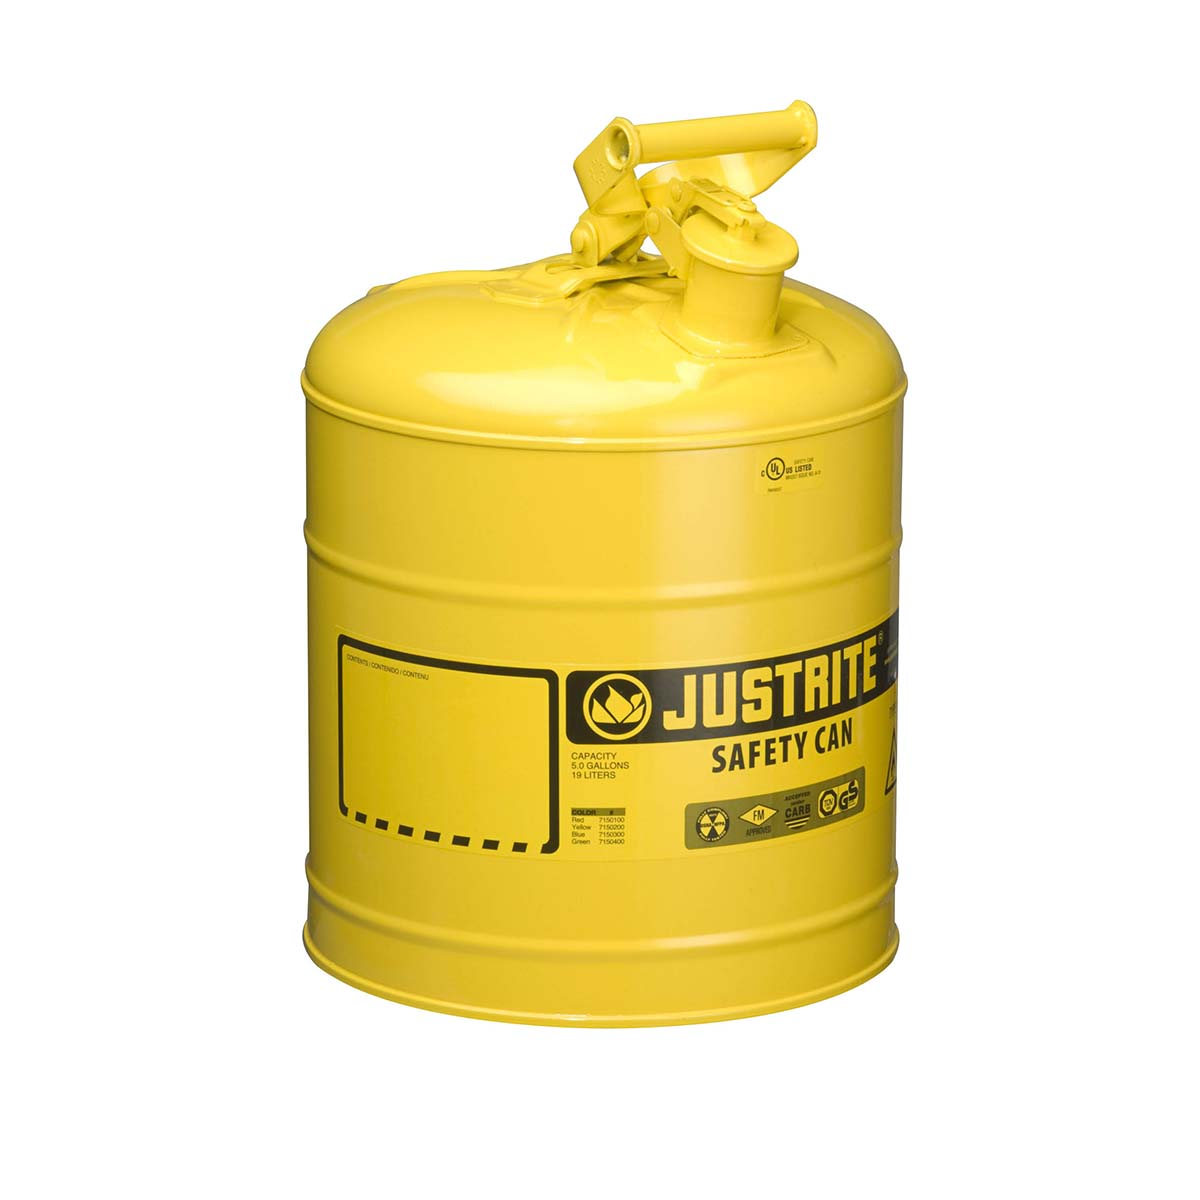 Type I Steel Safety Can for flammables, 5 gallon, S/S flame arrester, self-close lid, Yellow.